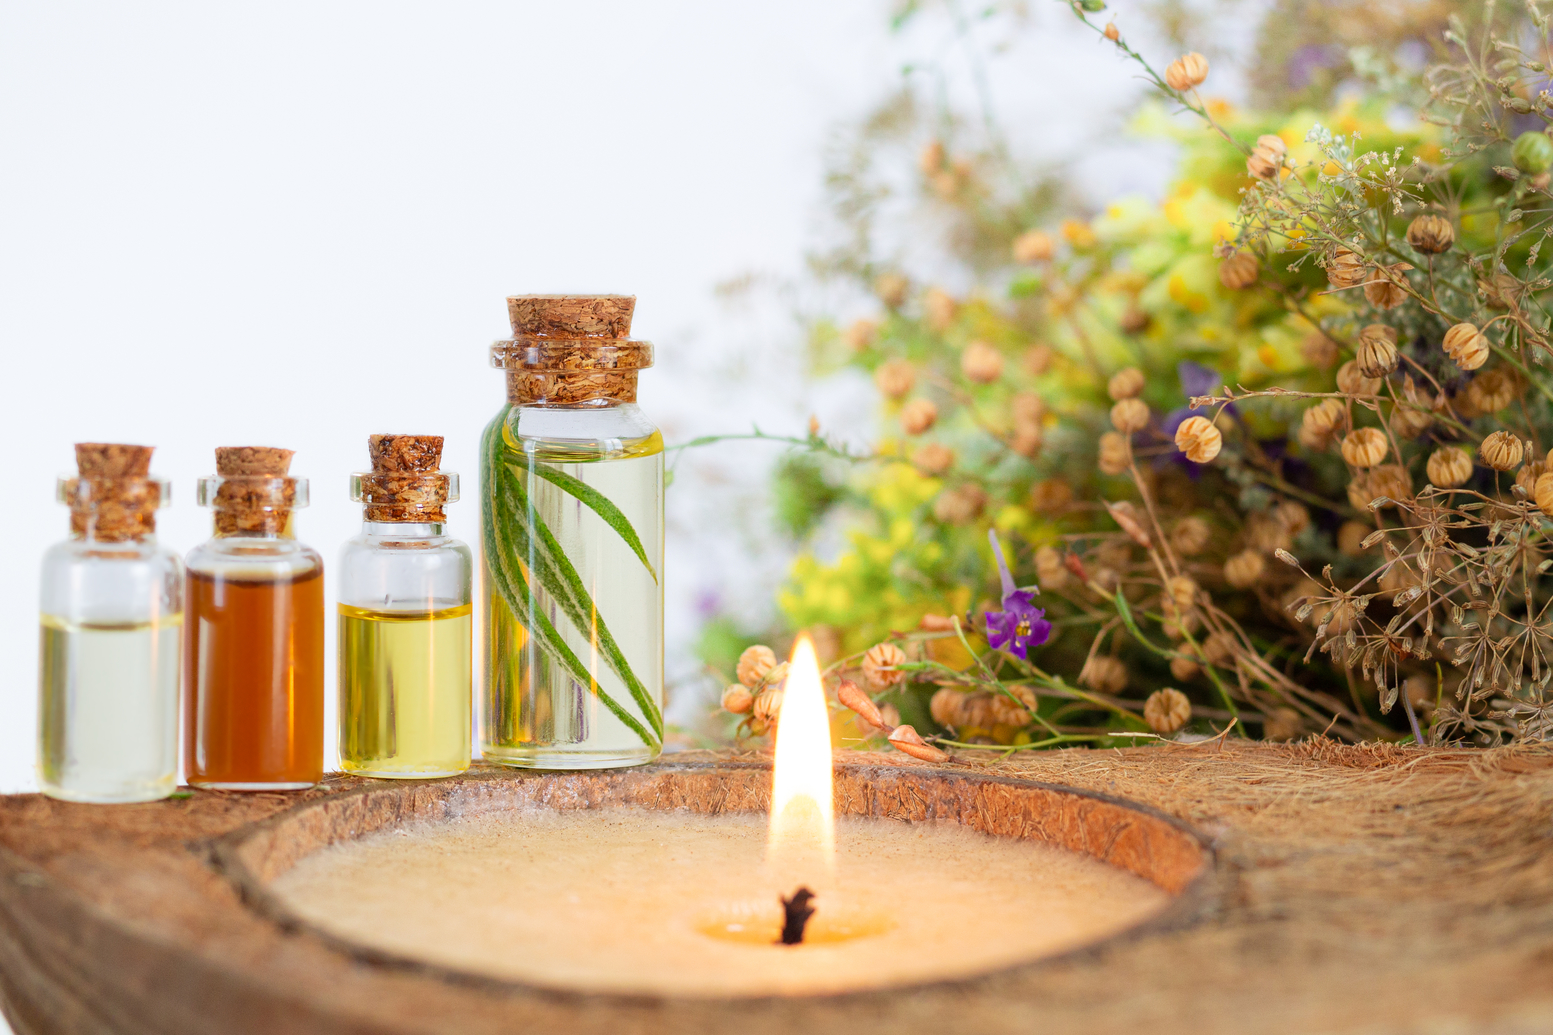 About us - Essential oils spa set with burning candle, healthy herbs and flower